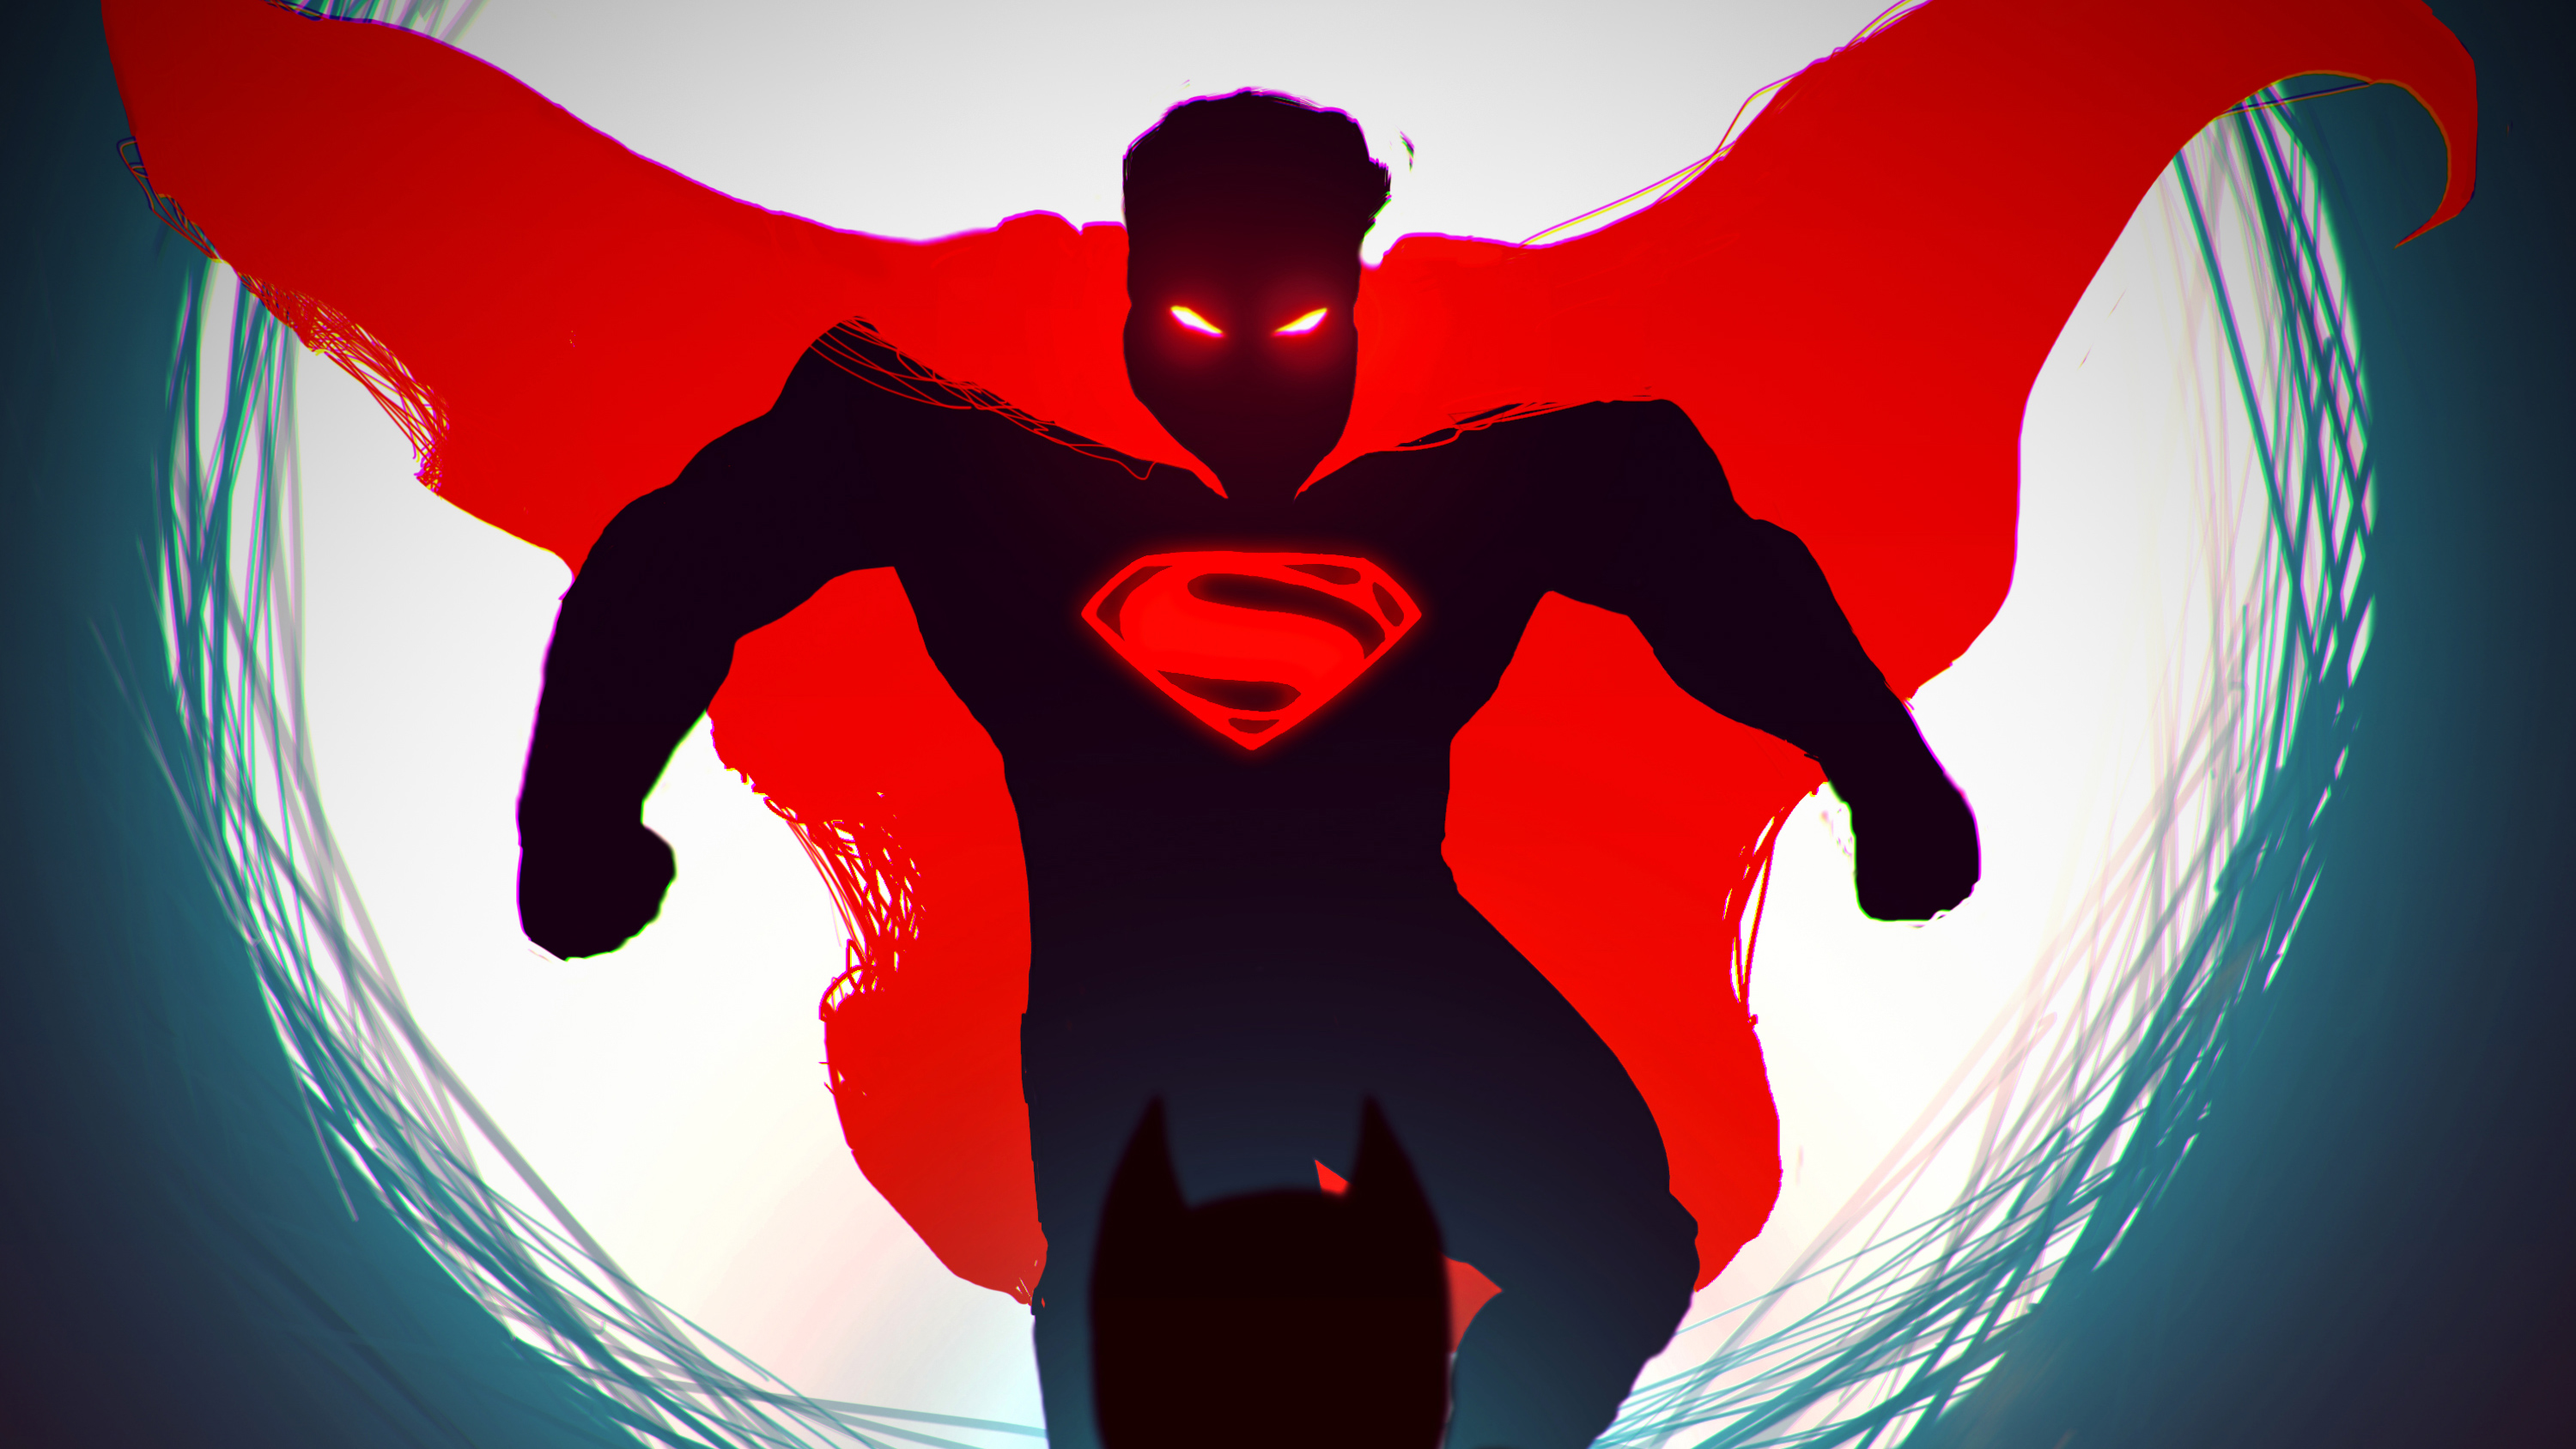 Superman Red Dark Hd Superheroes 4k Wallpapers Images Backgrounds Photos And Pictures